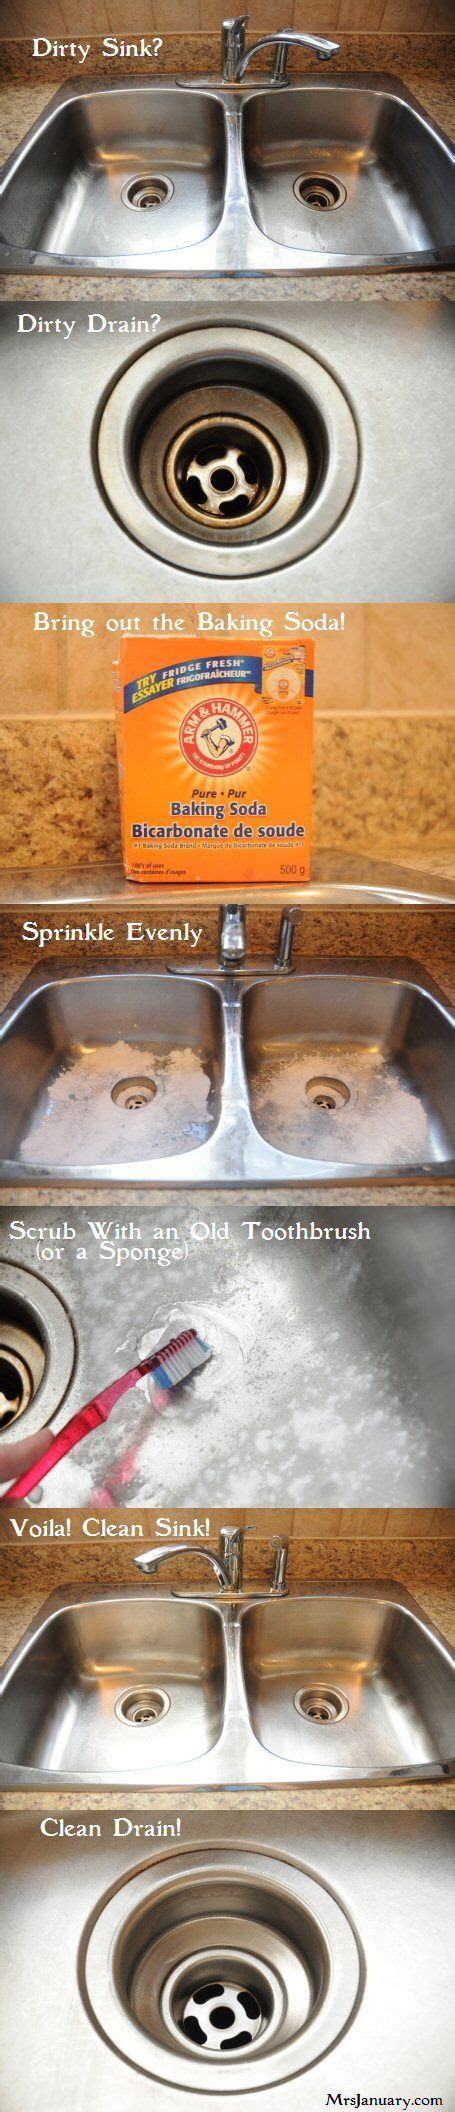 Cleaning Kitchen Sink With Baking Soda How To Shine A Stainless Steel Sink Cleaning My Entire House With Baking Soda In College Got Me